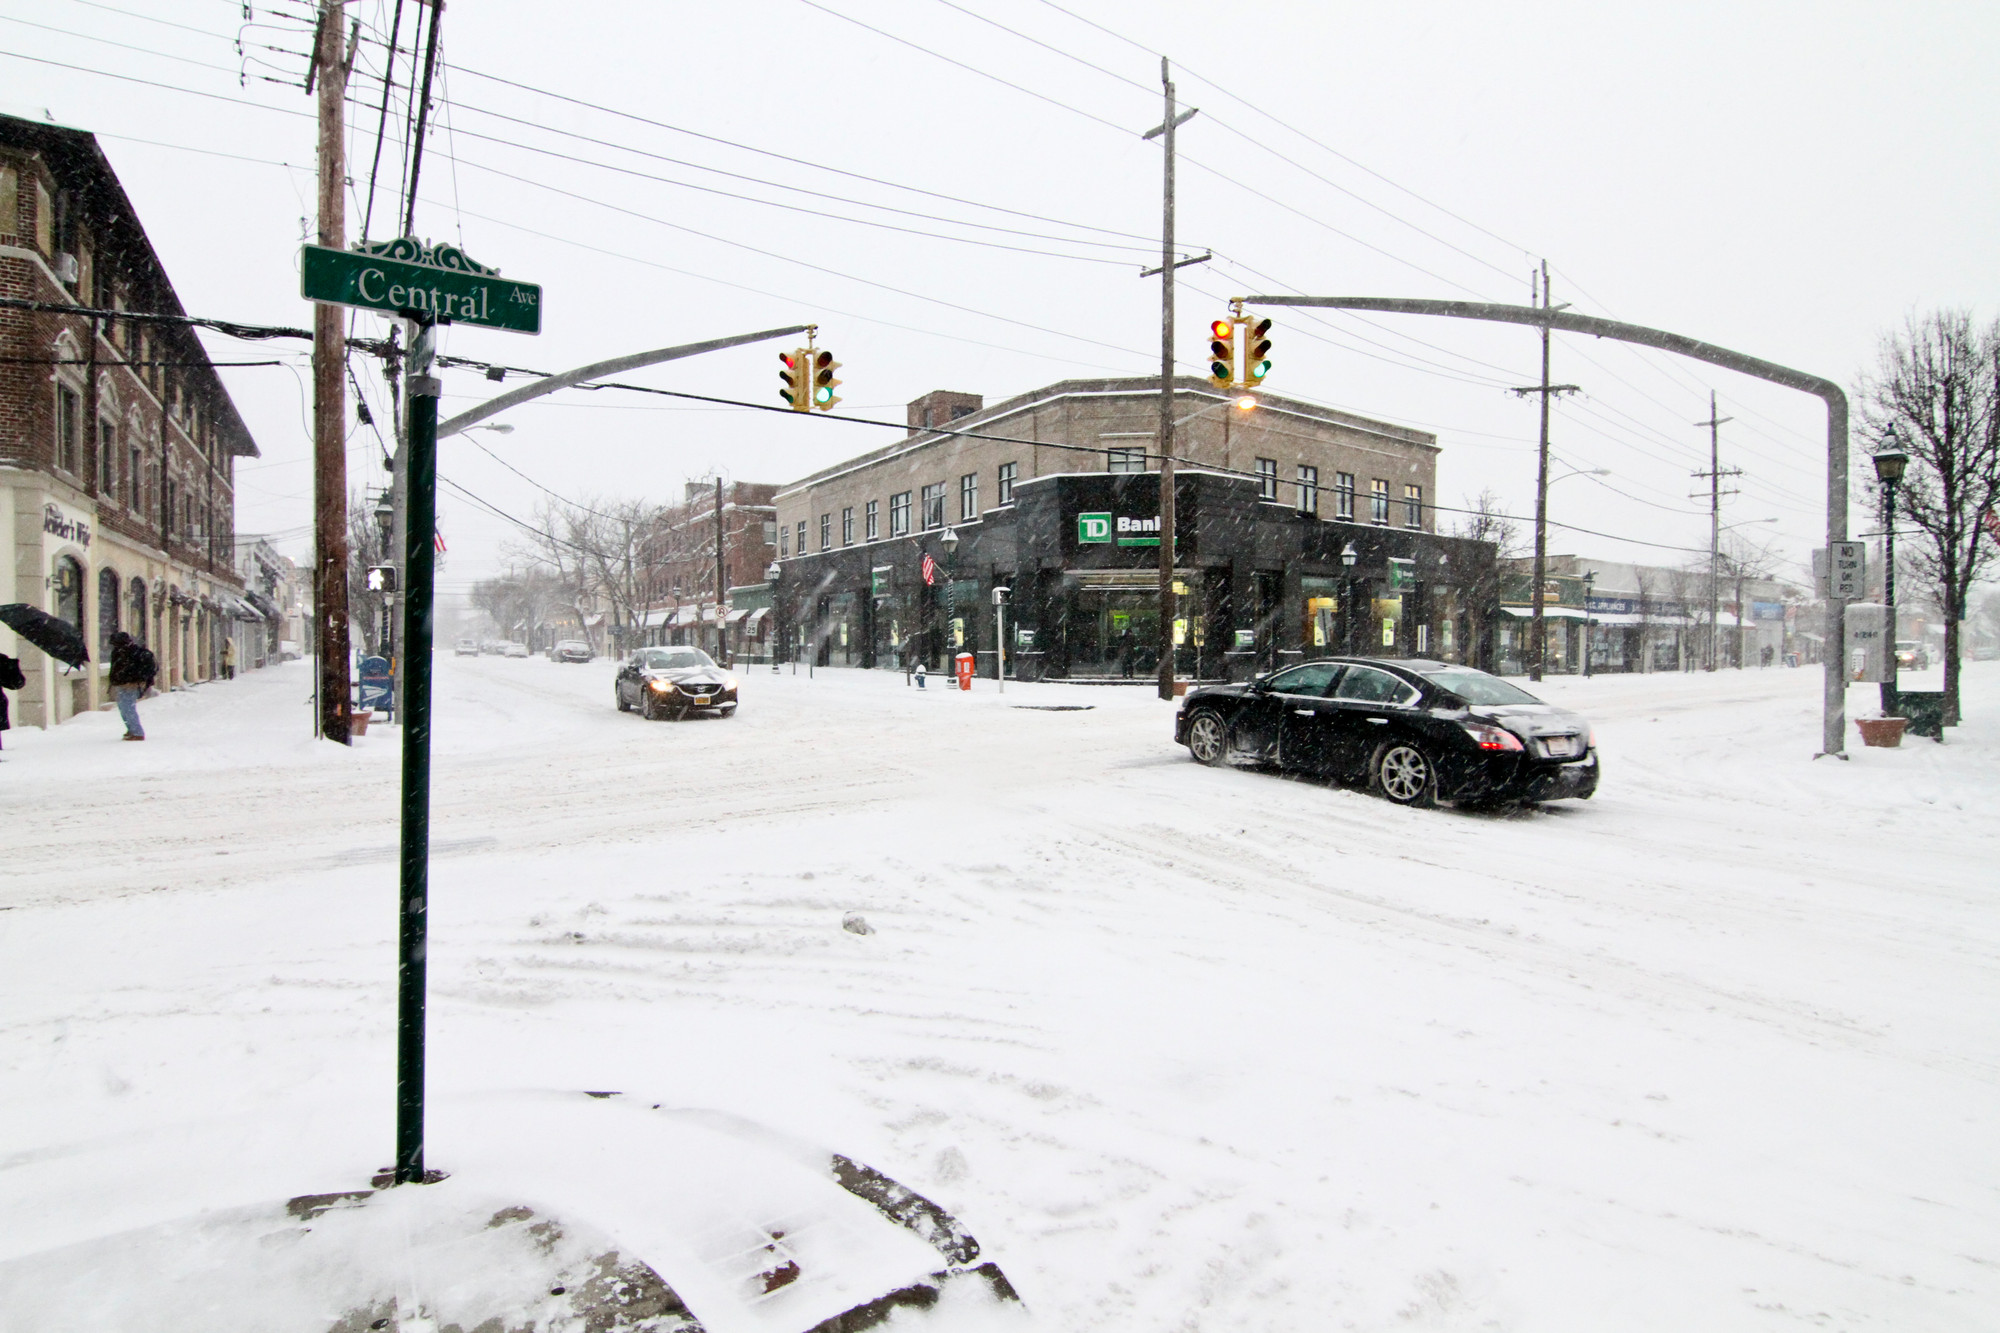 After the snow hit Cedarhurst on Tuesday, the village has been plowing and shoveling to clear the streets.